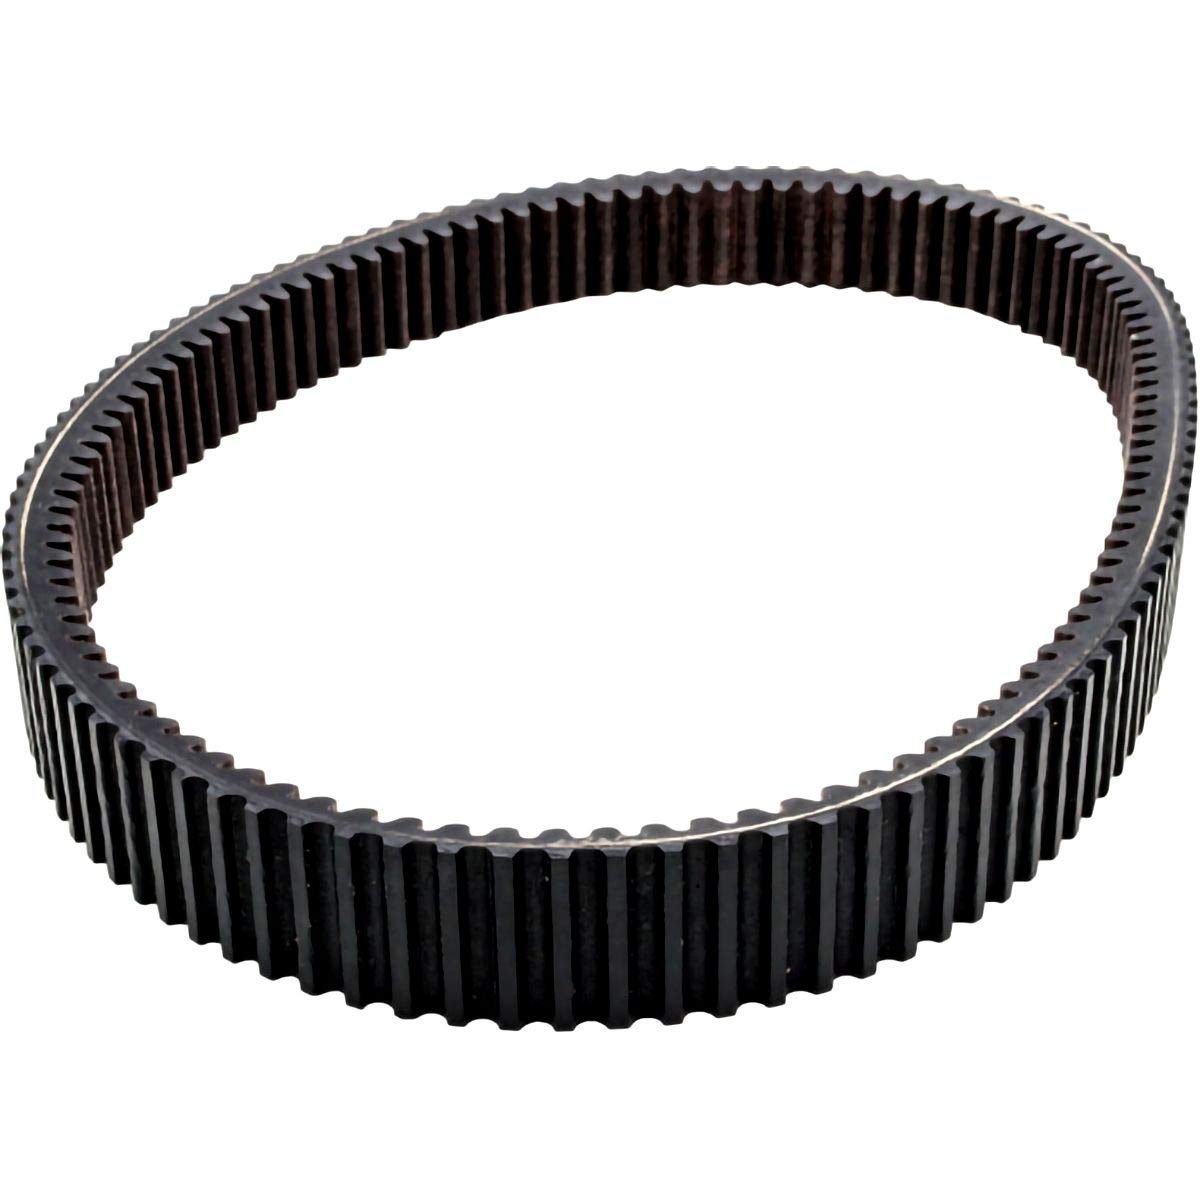 Trinity Racing Sand Storm RZR XP Turbo / Turbo S / RS1 Drive Belt (2016-2019) by Trinity